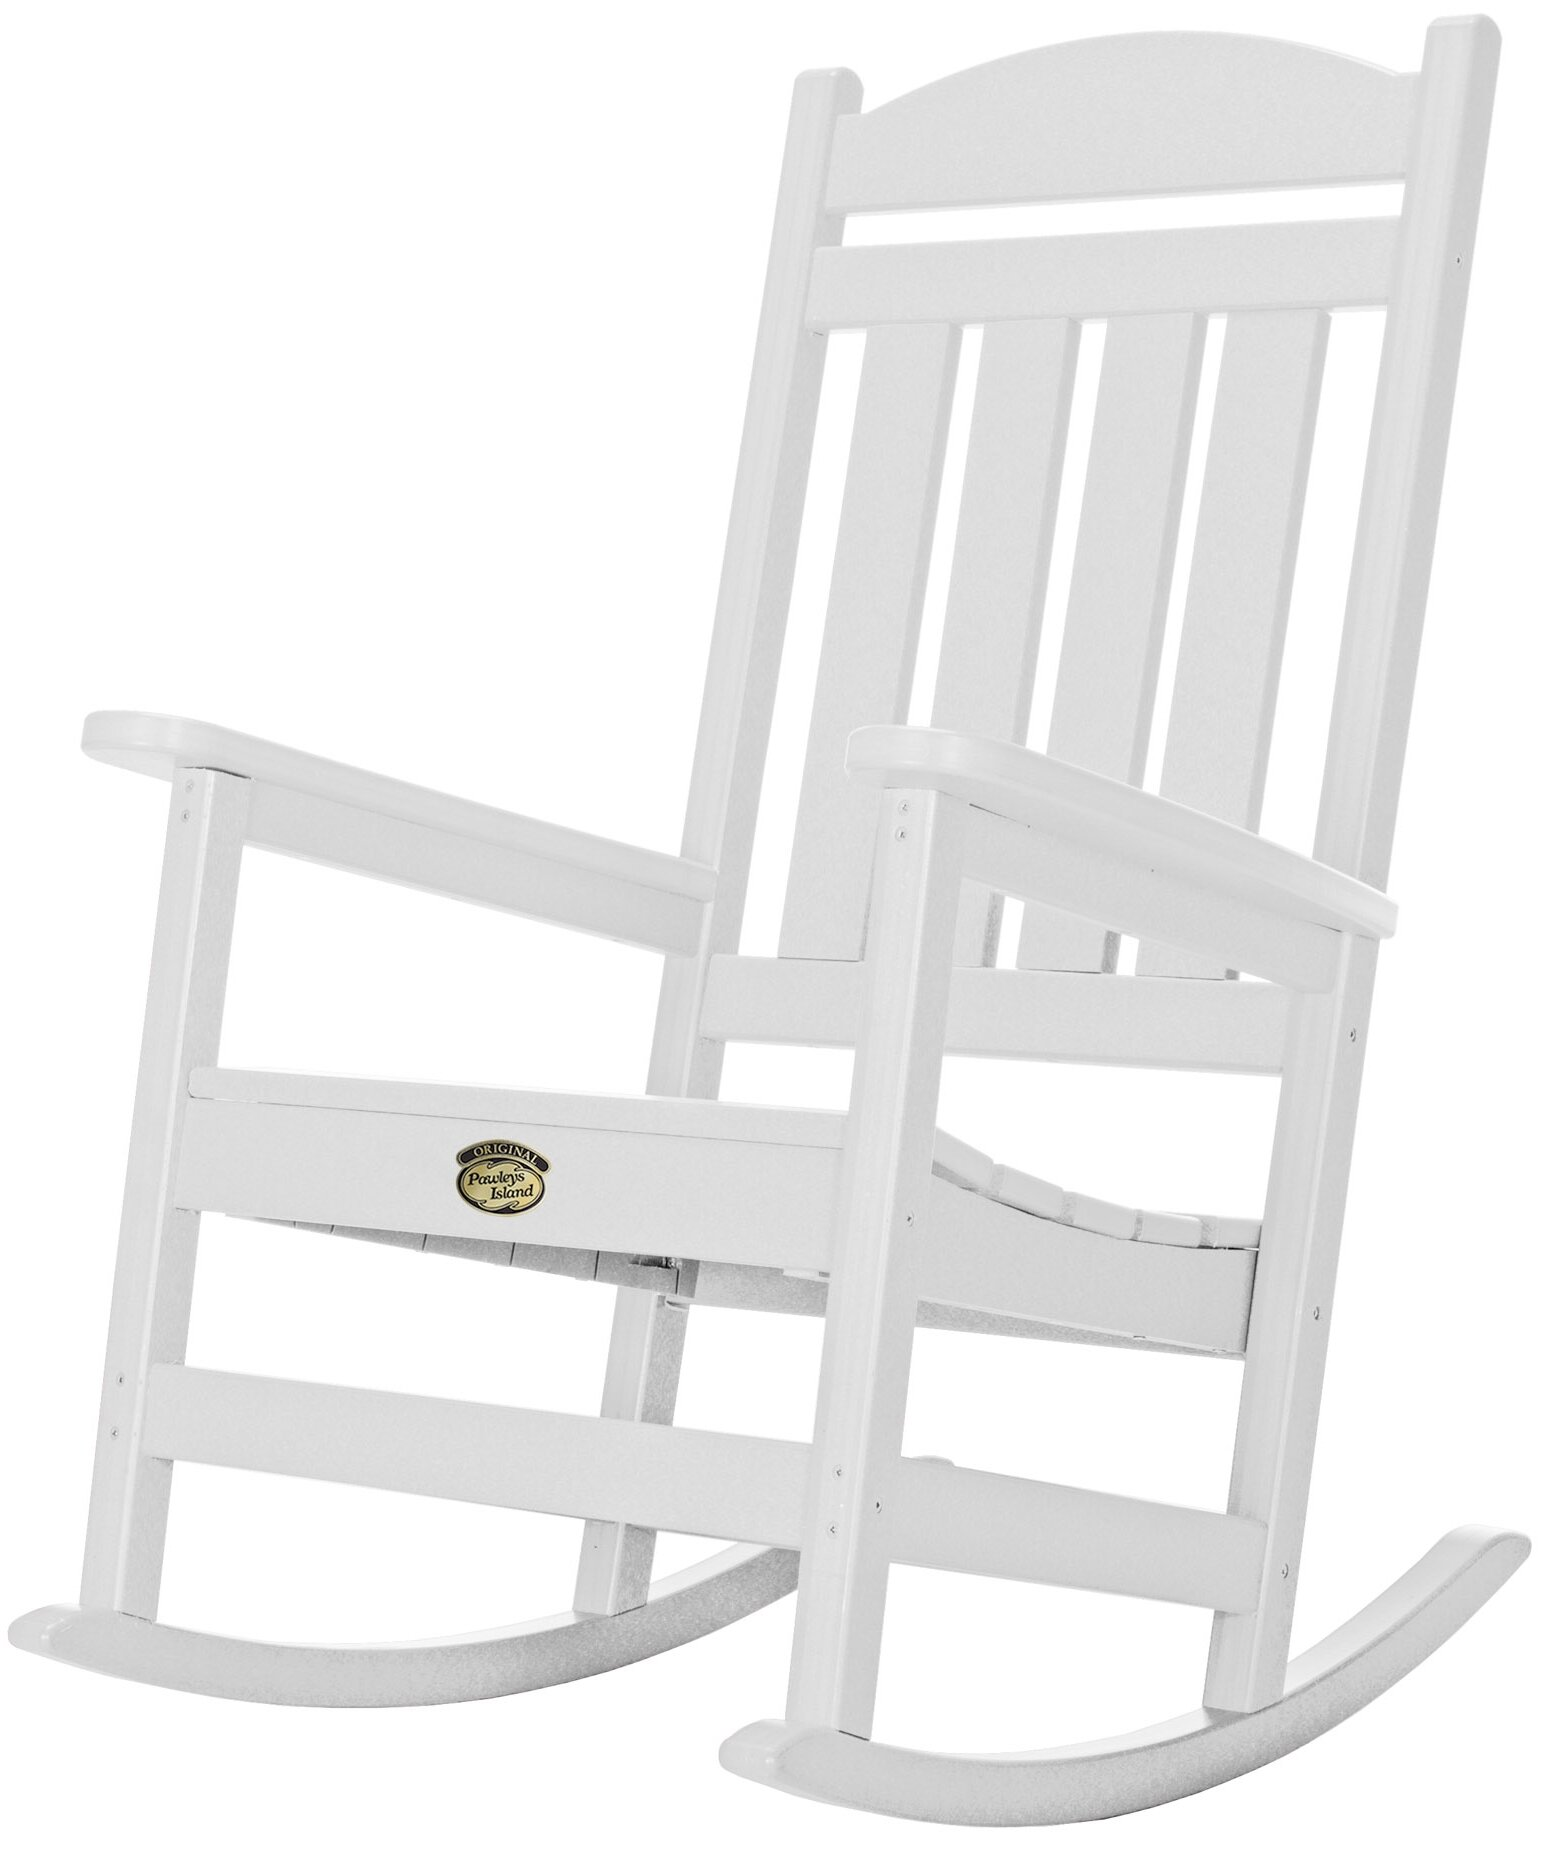 Darby Home Co Finnell Porch Rocking Chair U0026 Reviews | Wayfair